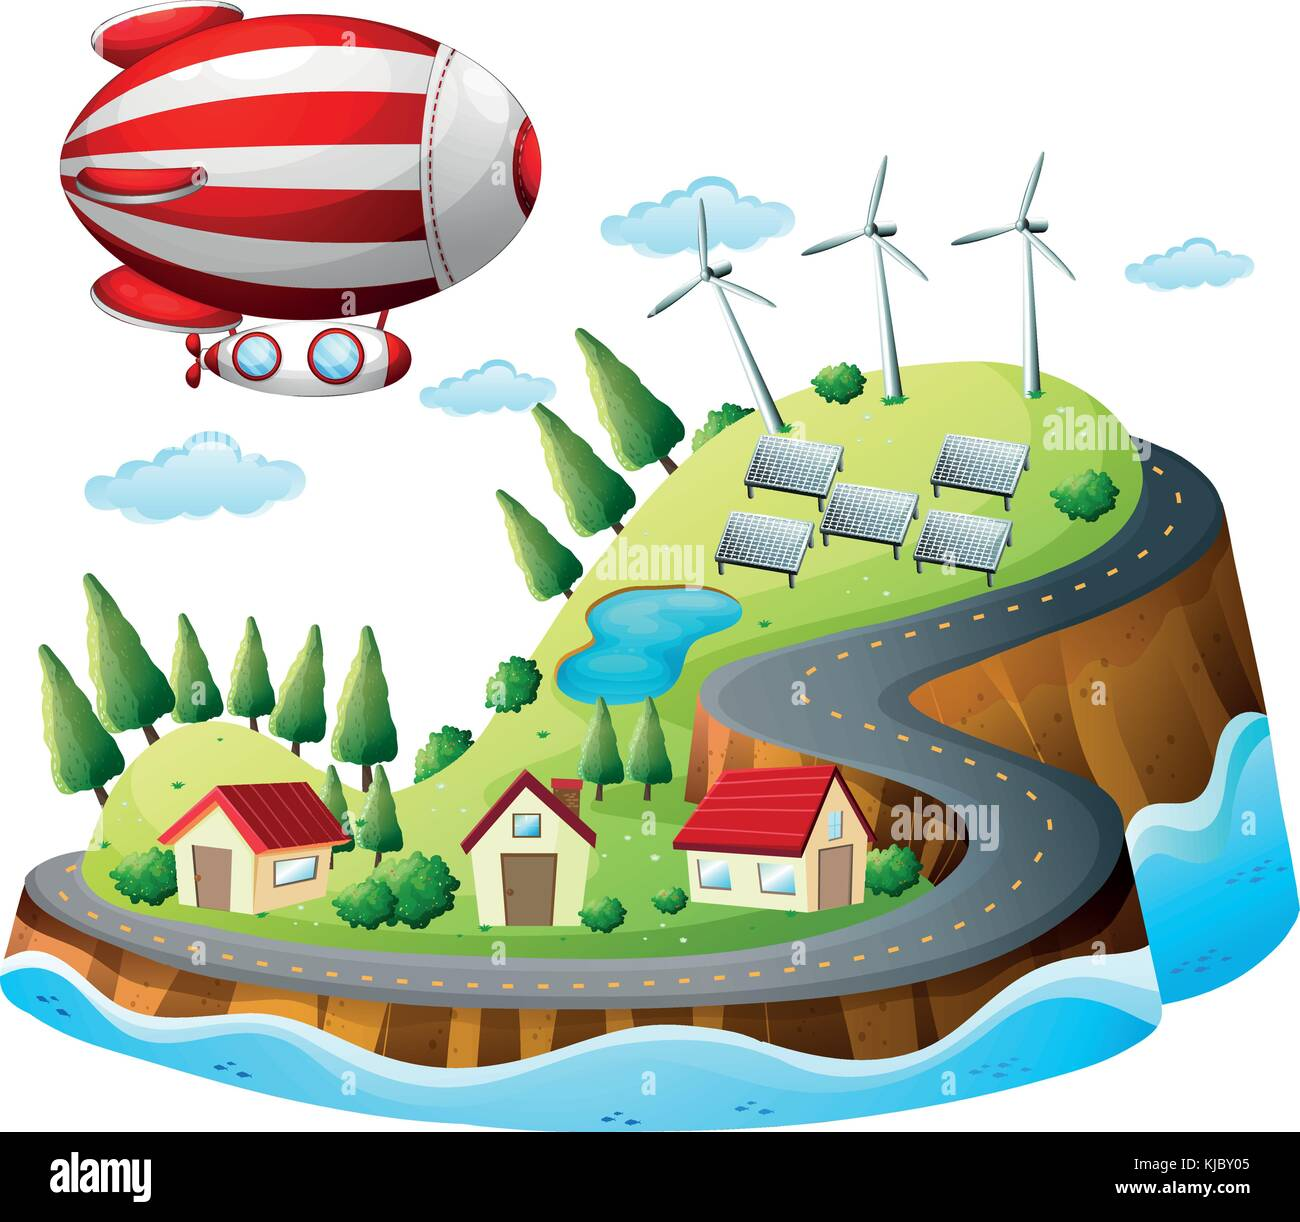 Illustration of a village with an airship above on a white background - Stock Vector